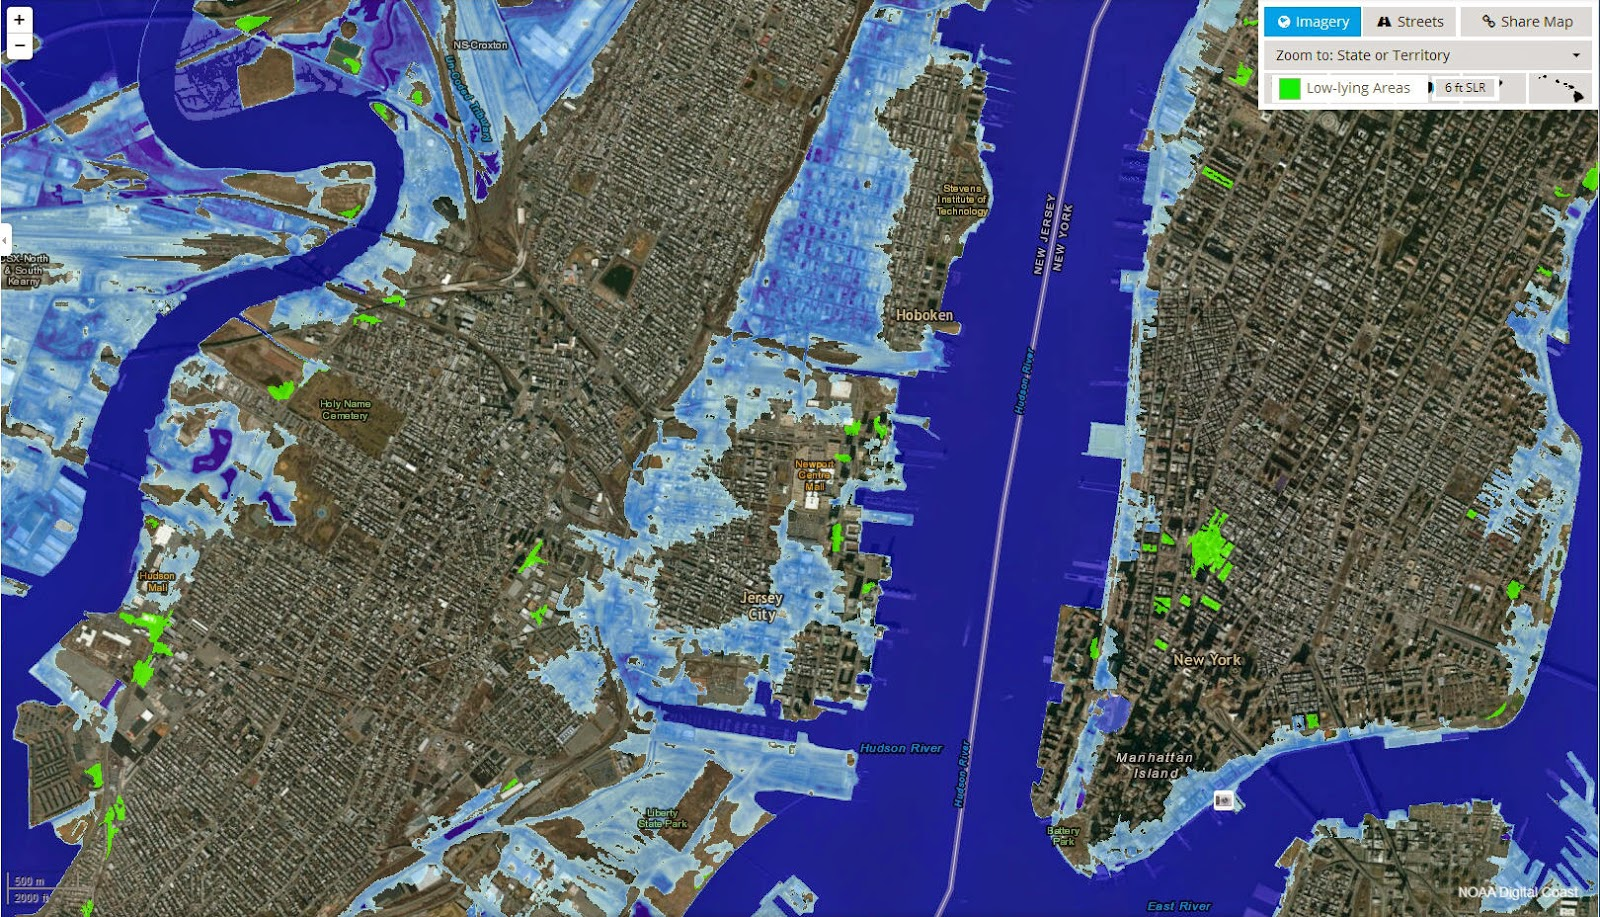 evaluating the effects of global warming in new york city Providing climate change data and information relevant to new york state to support scientifically sound decision making more photo: brian birke, cc browse resources search for search maps more maps use maps to identify climate change impacts and assess vulnerabilities in new york state data more.